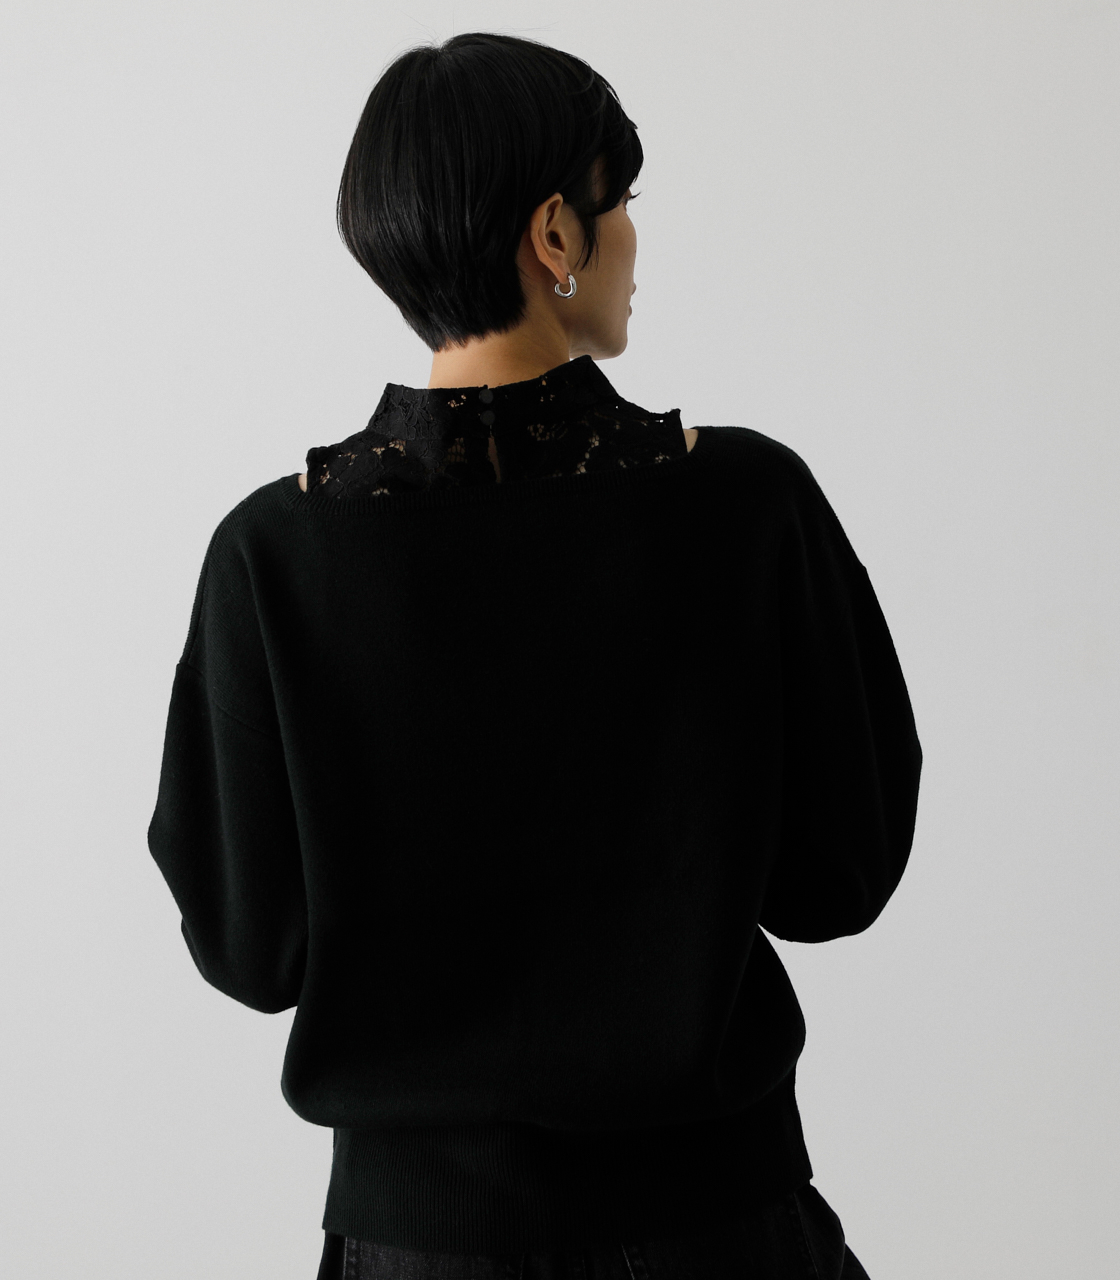 LACE DOCKING CACHE-COEUR TOPS/レースドッキングカシュクールトップス 詳細画像 BLK 2